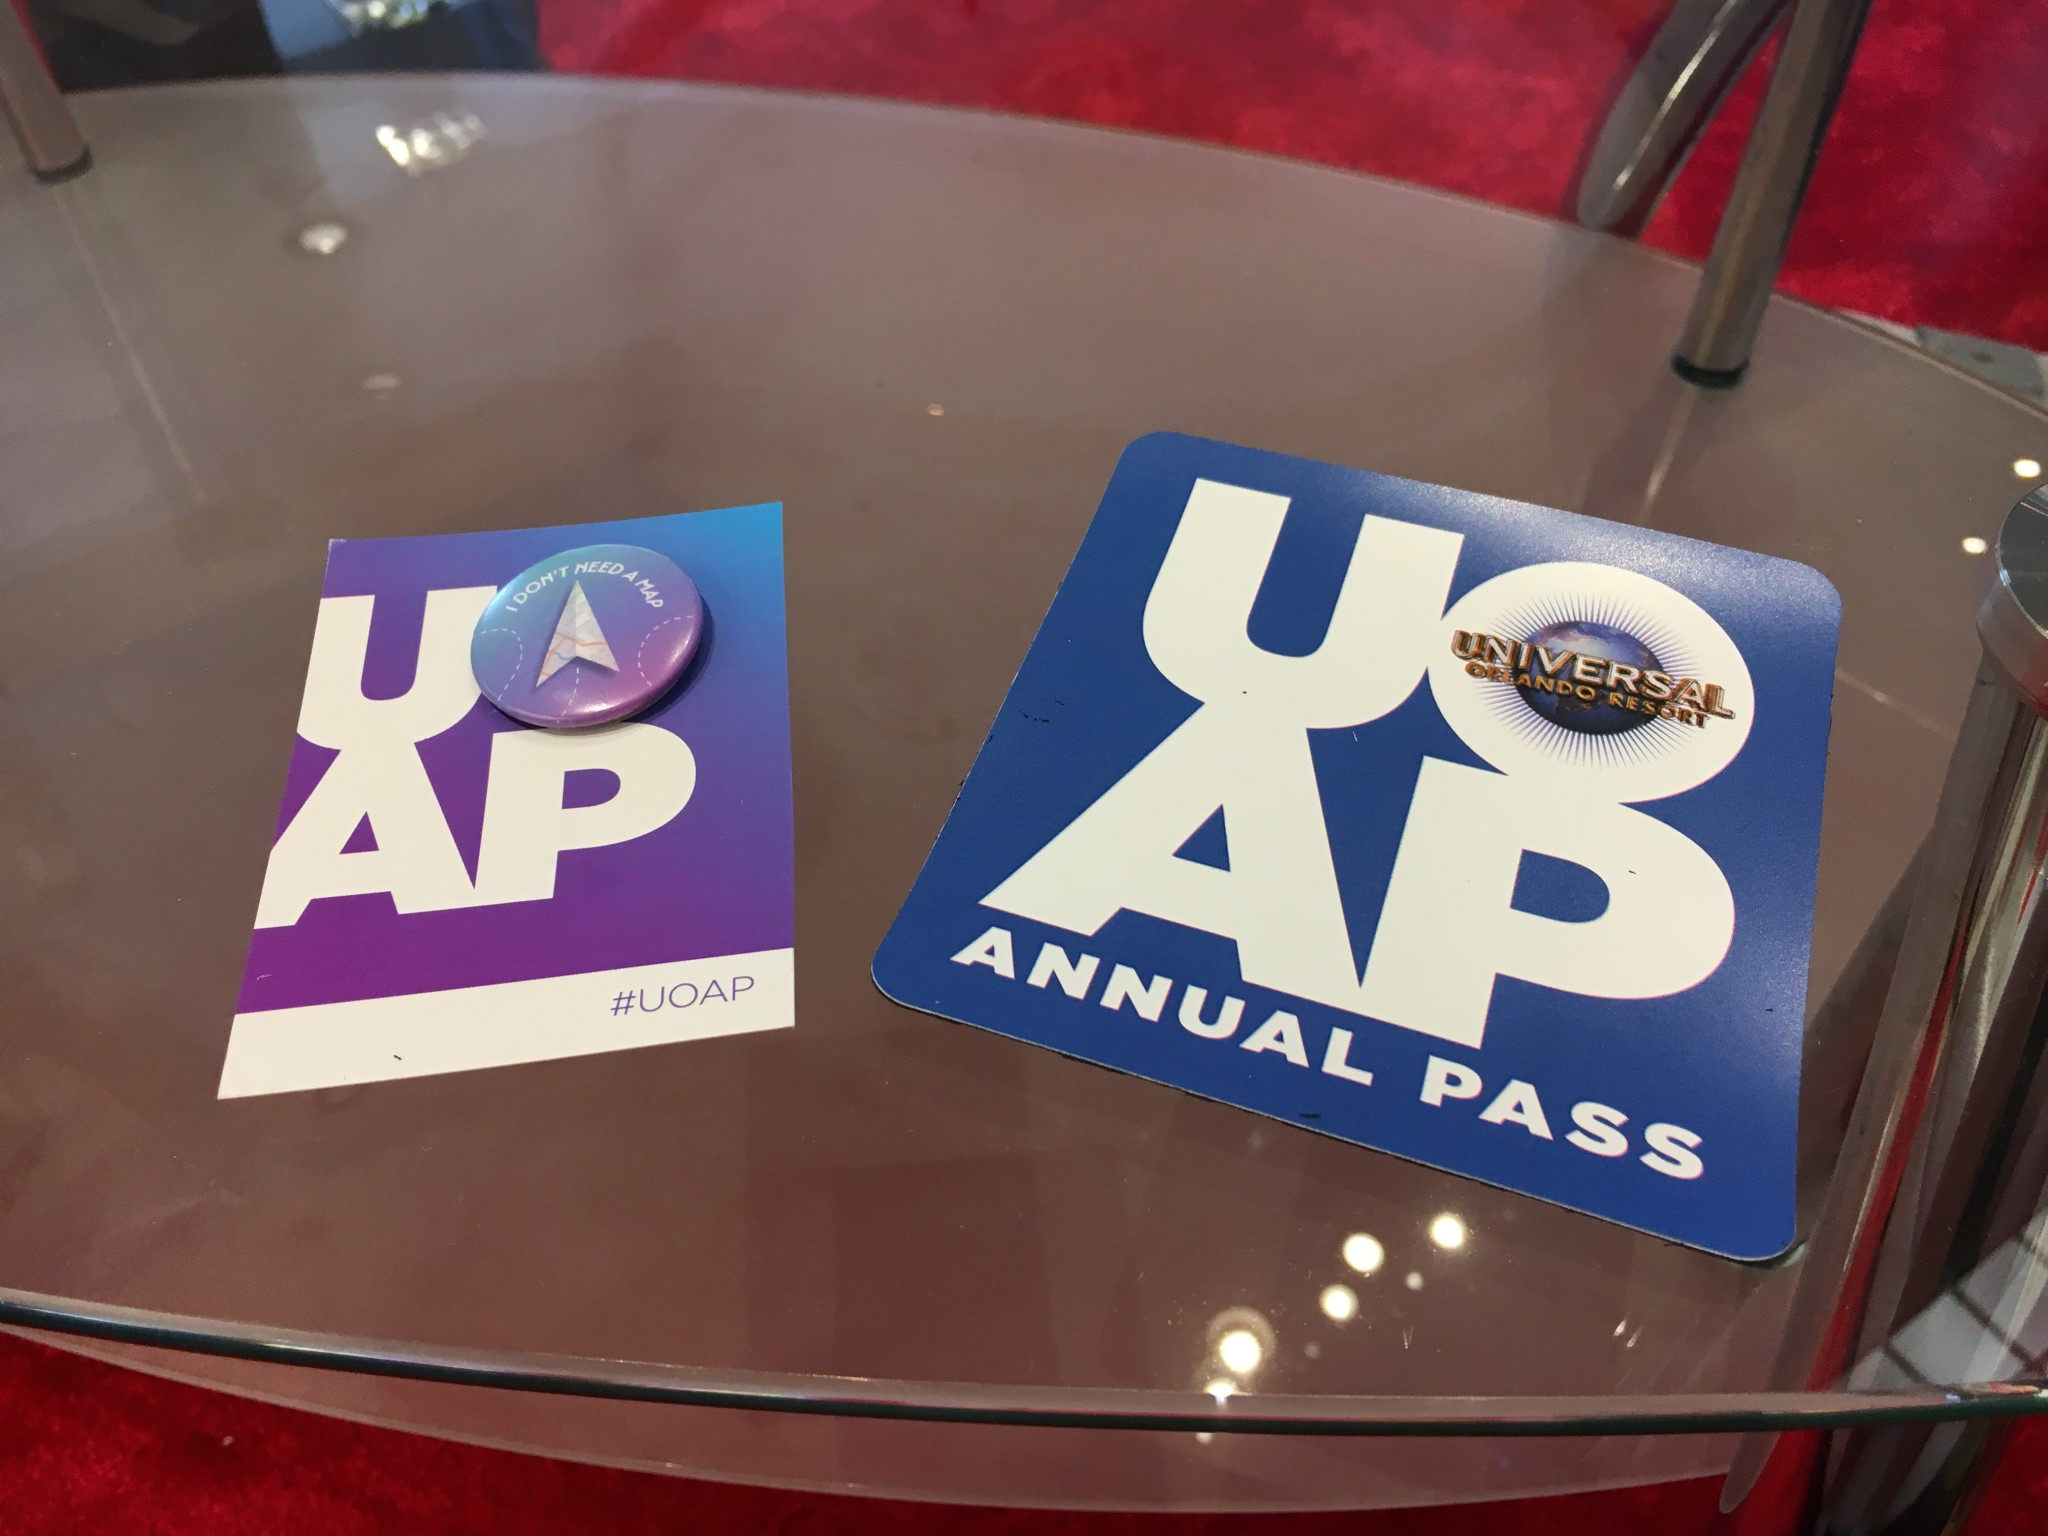 191f4497 Passholders can pick up free buttons (while available) and car magnets at  the lounge as well.